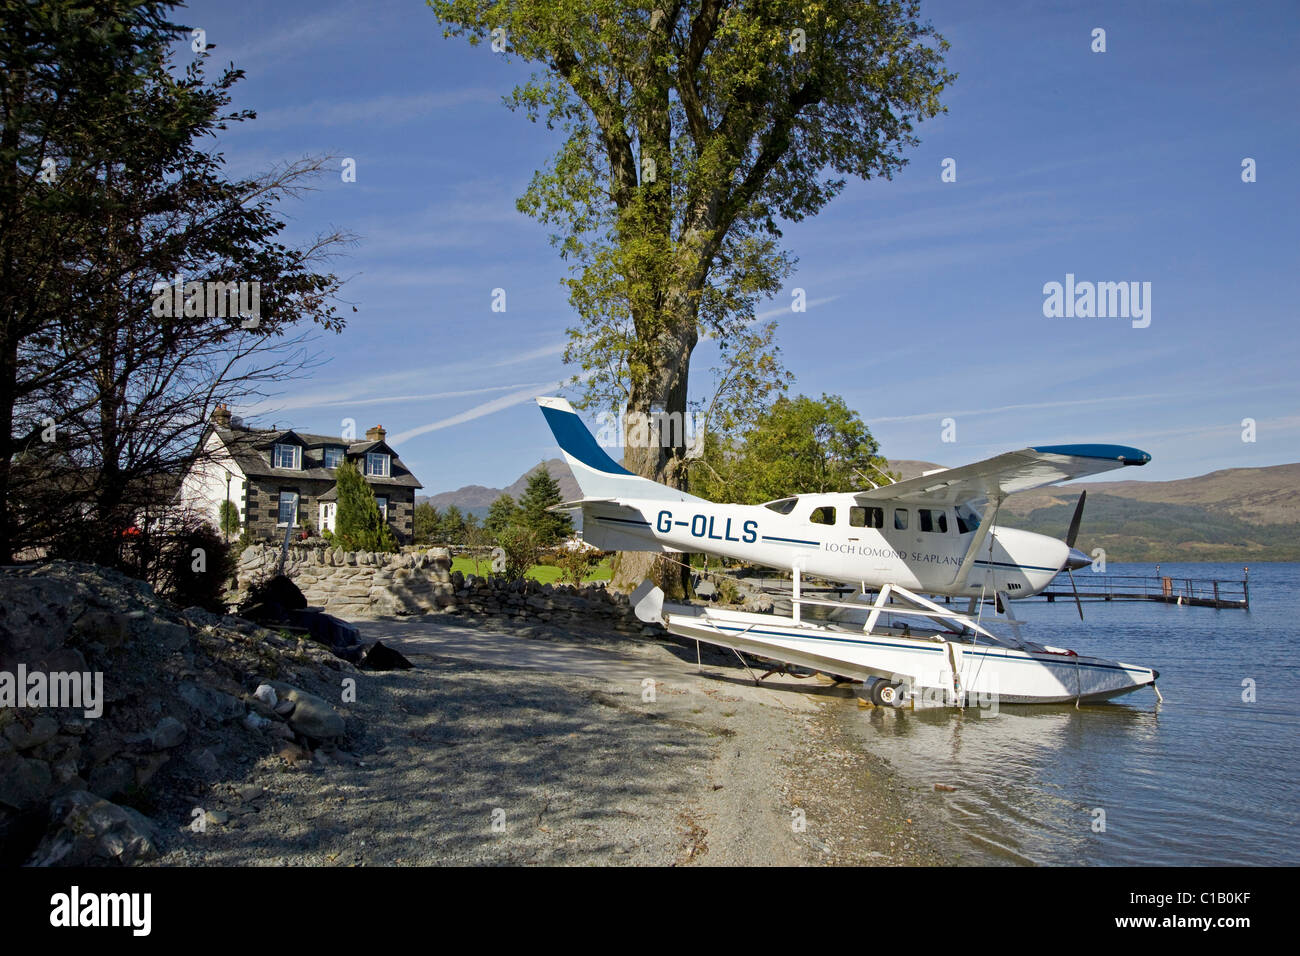 Cessna Sealplane parked, moored, or beached on Loch Lomond - Stock Image